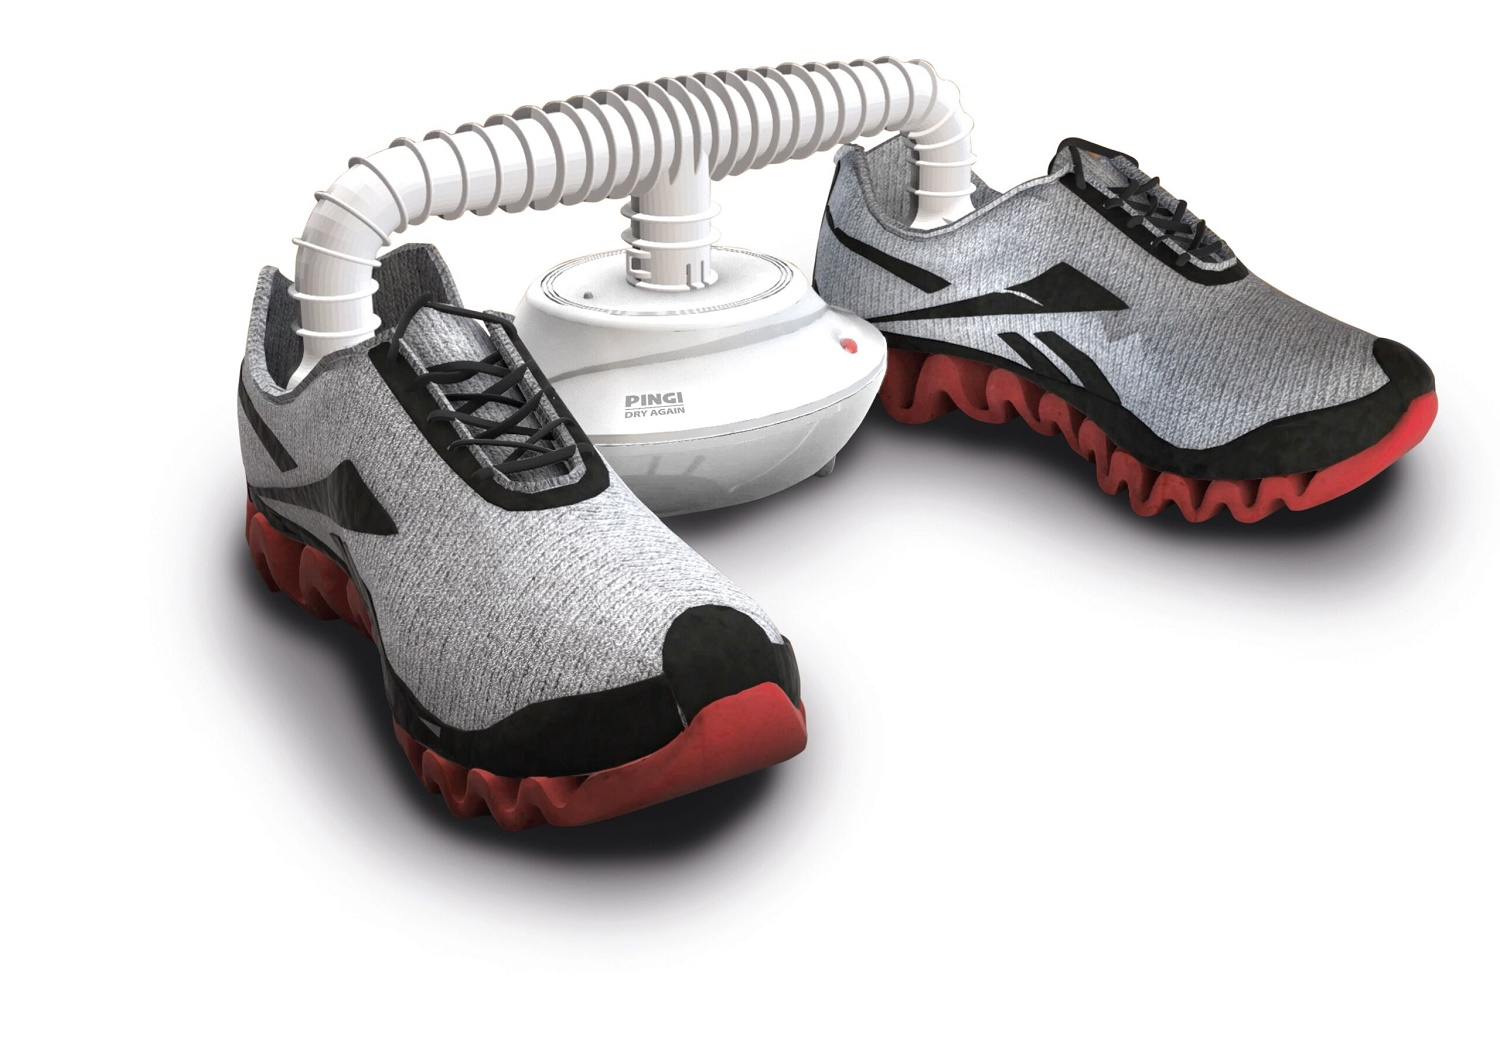 Description of PINGI DRY AGAIN SHOE DRIER EXPANSION PACK